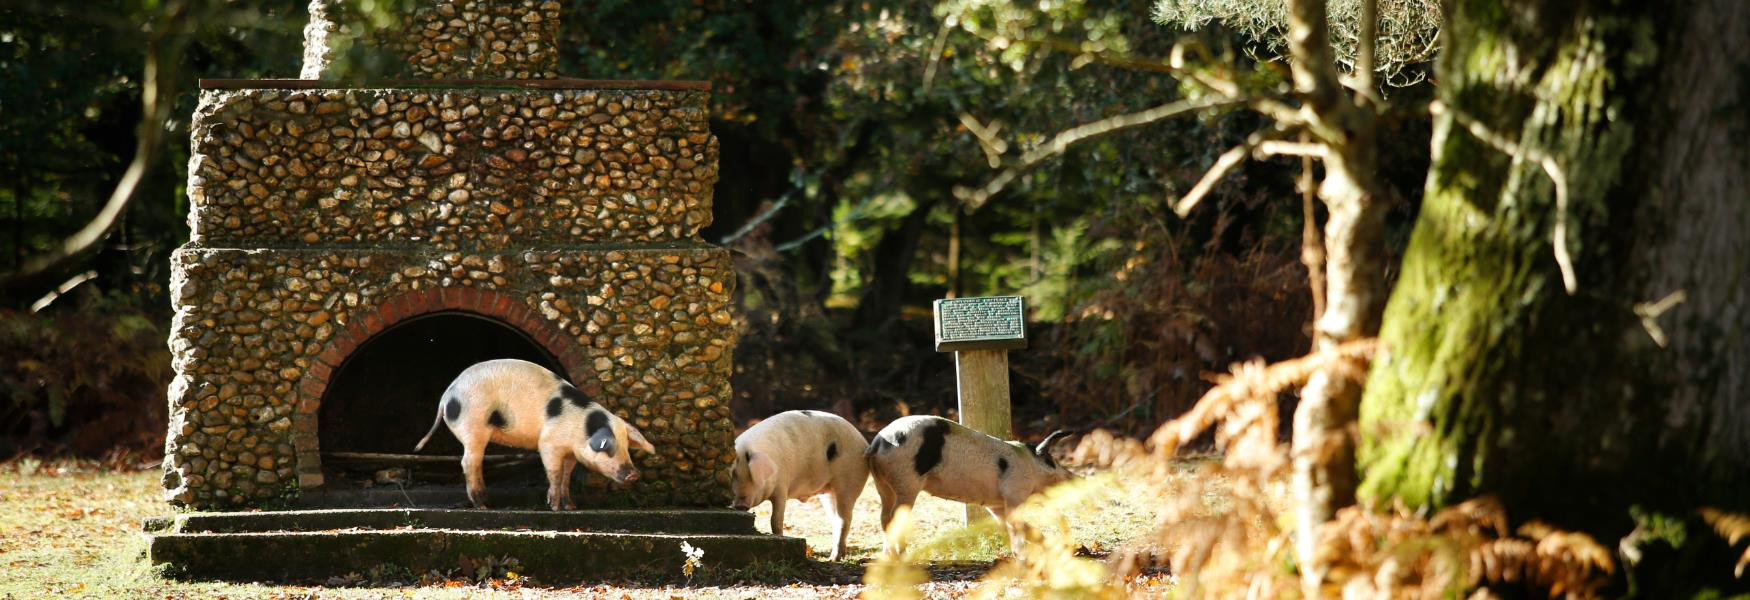 pigs at the portugese fireplace in the new forest